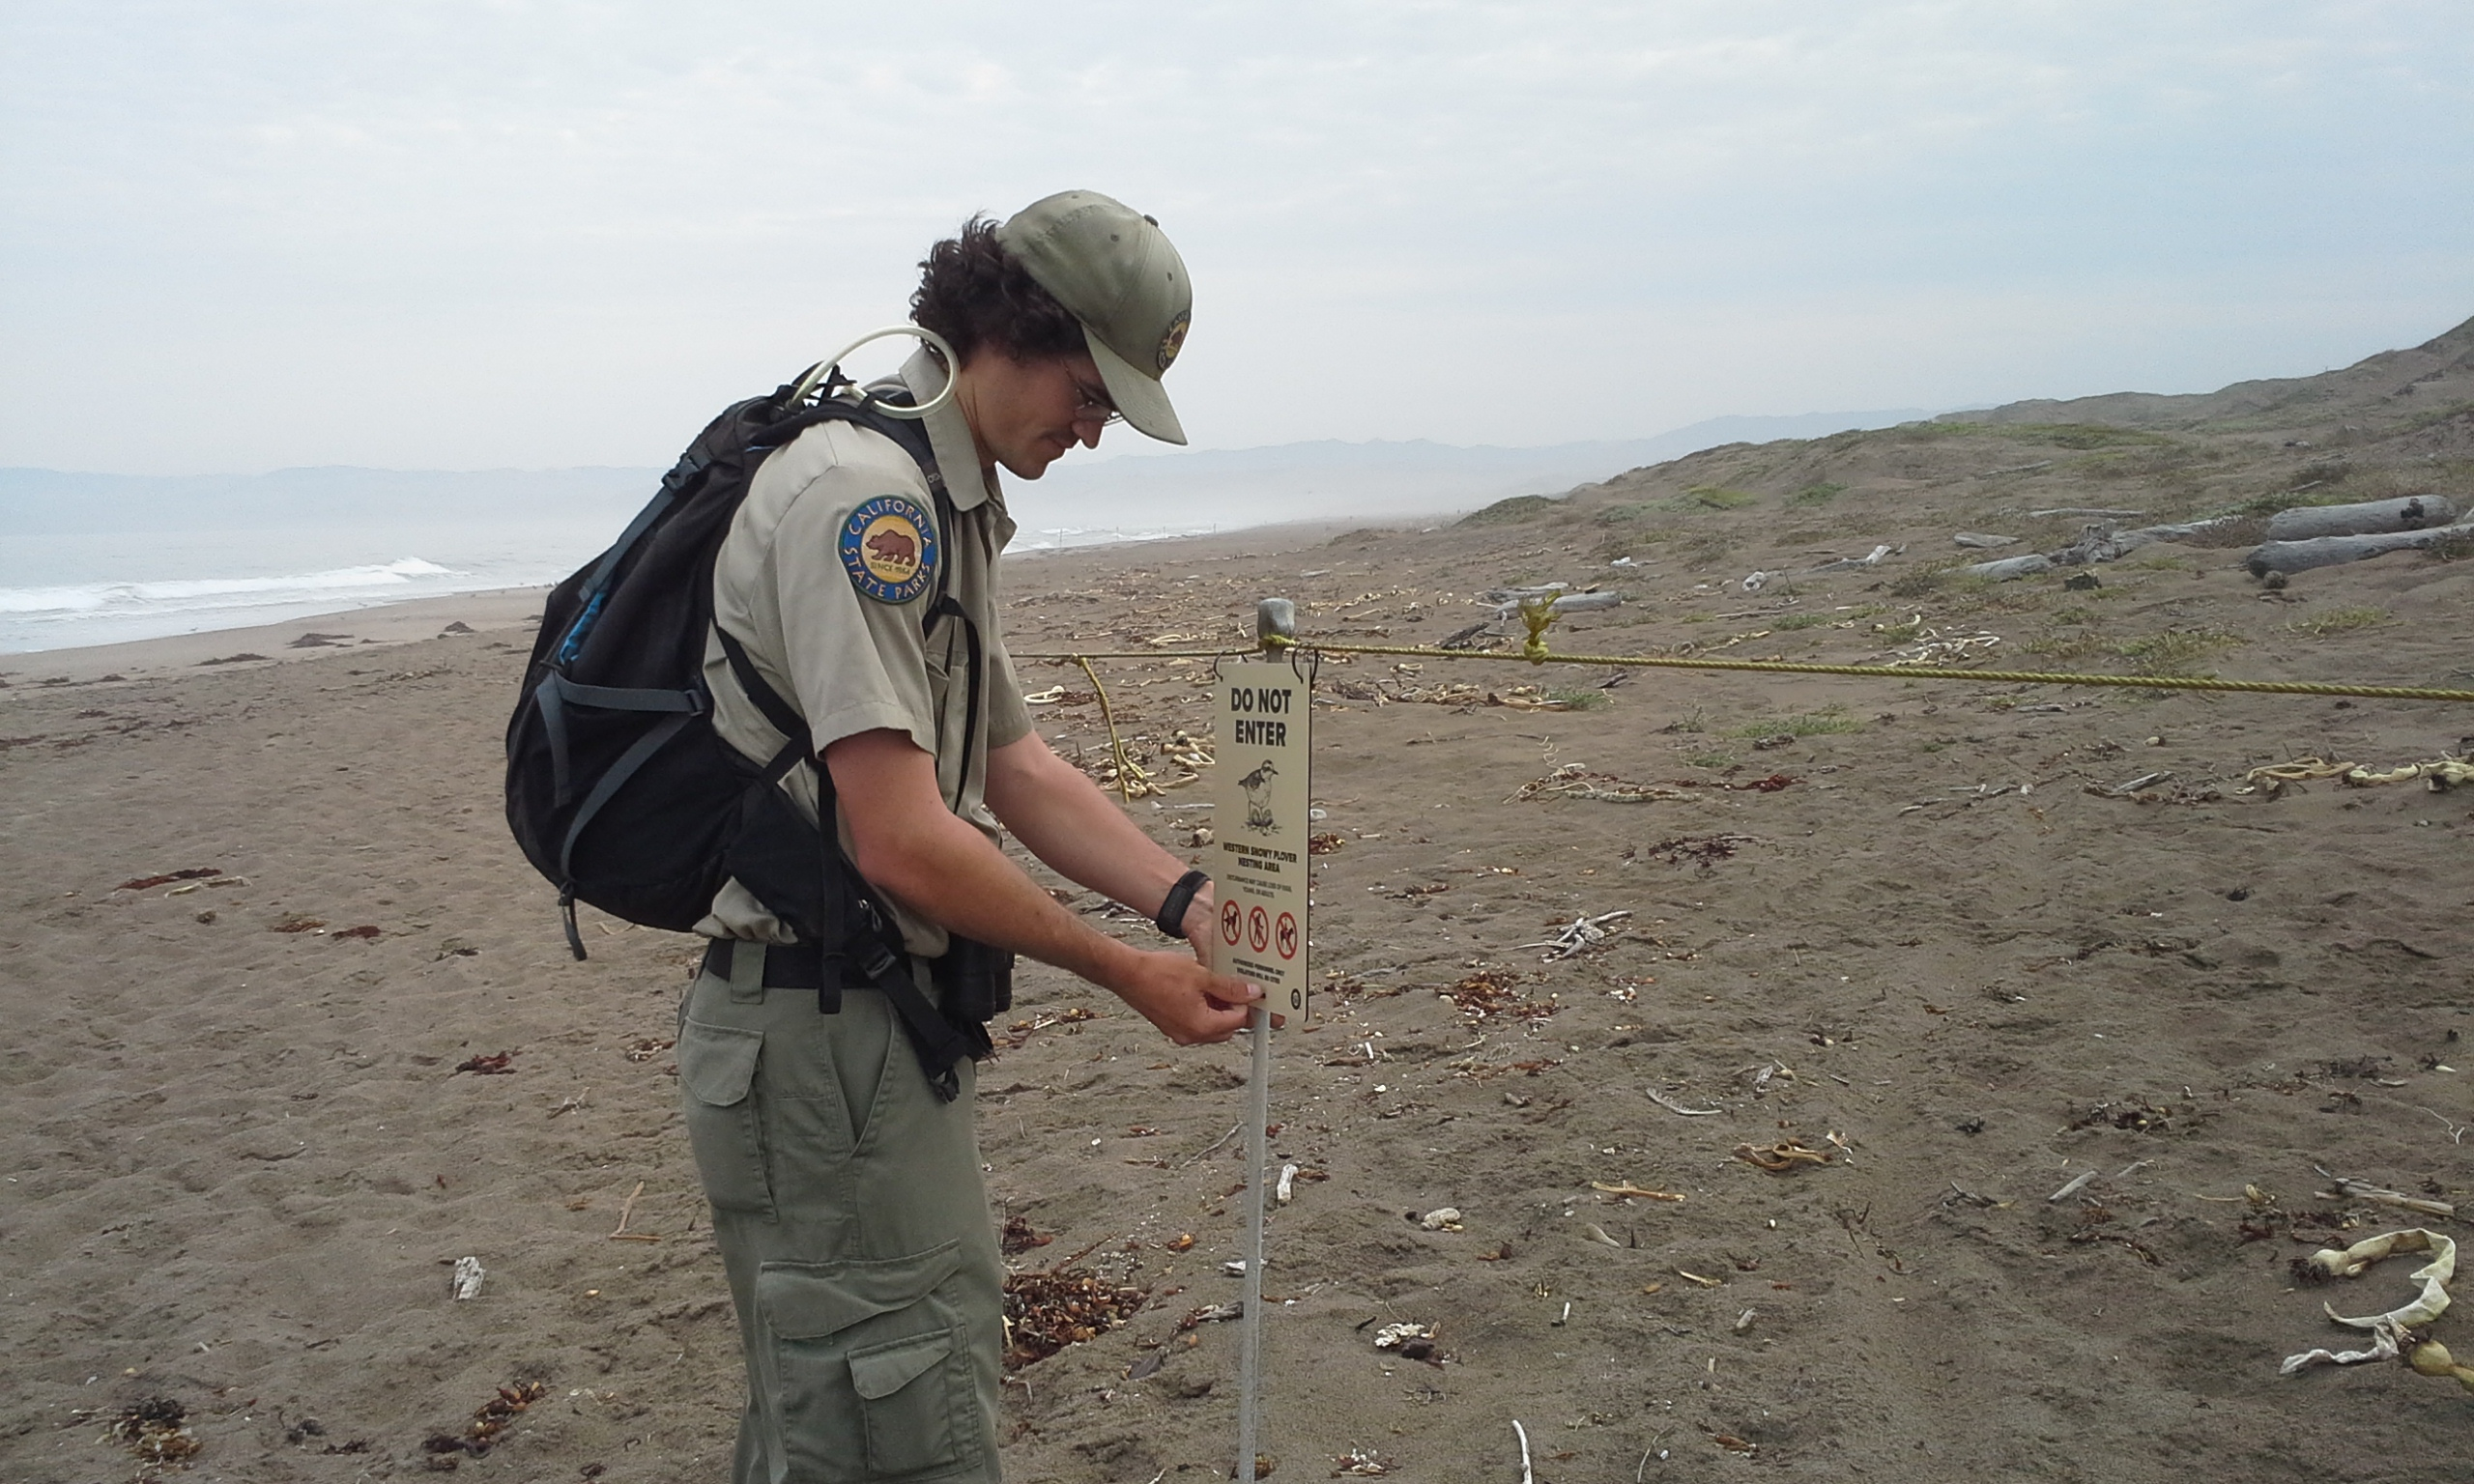 Seth Ontiveros, a snowy plover monitor at Morro Bay State Park, installs a new snowy plover educational sign on the symbolic fencing that lines nesting areas on the Morro Bay sandspit.